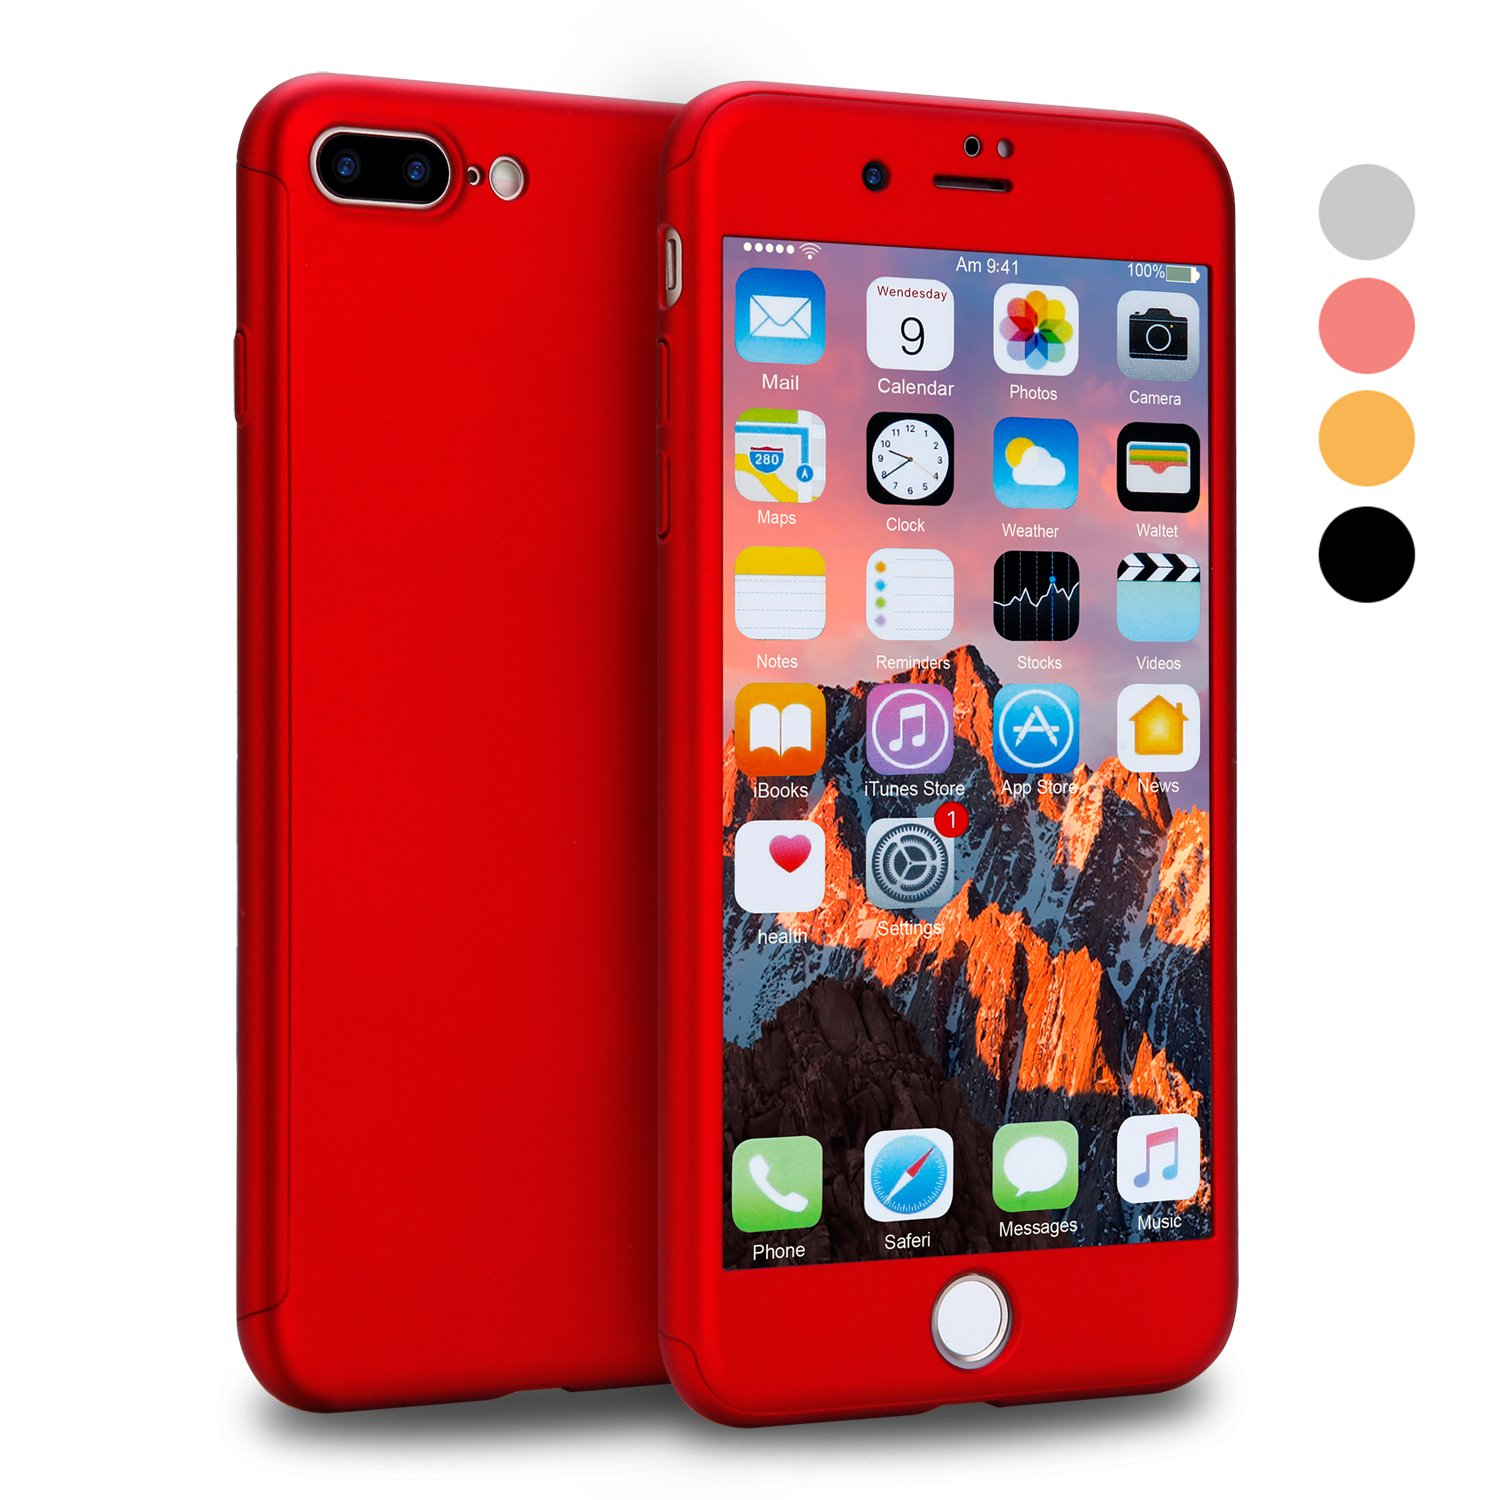 iPhone 8 Plus Case, VANSIN 360 Full Body Protection Hard Slim Case Coated Non Slip Matte Surface with Tempered Glass Screen Protector for Apple iPhone 8 Plus Only (5.5-inch) - Red by CANSHN